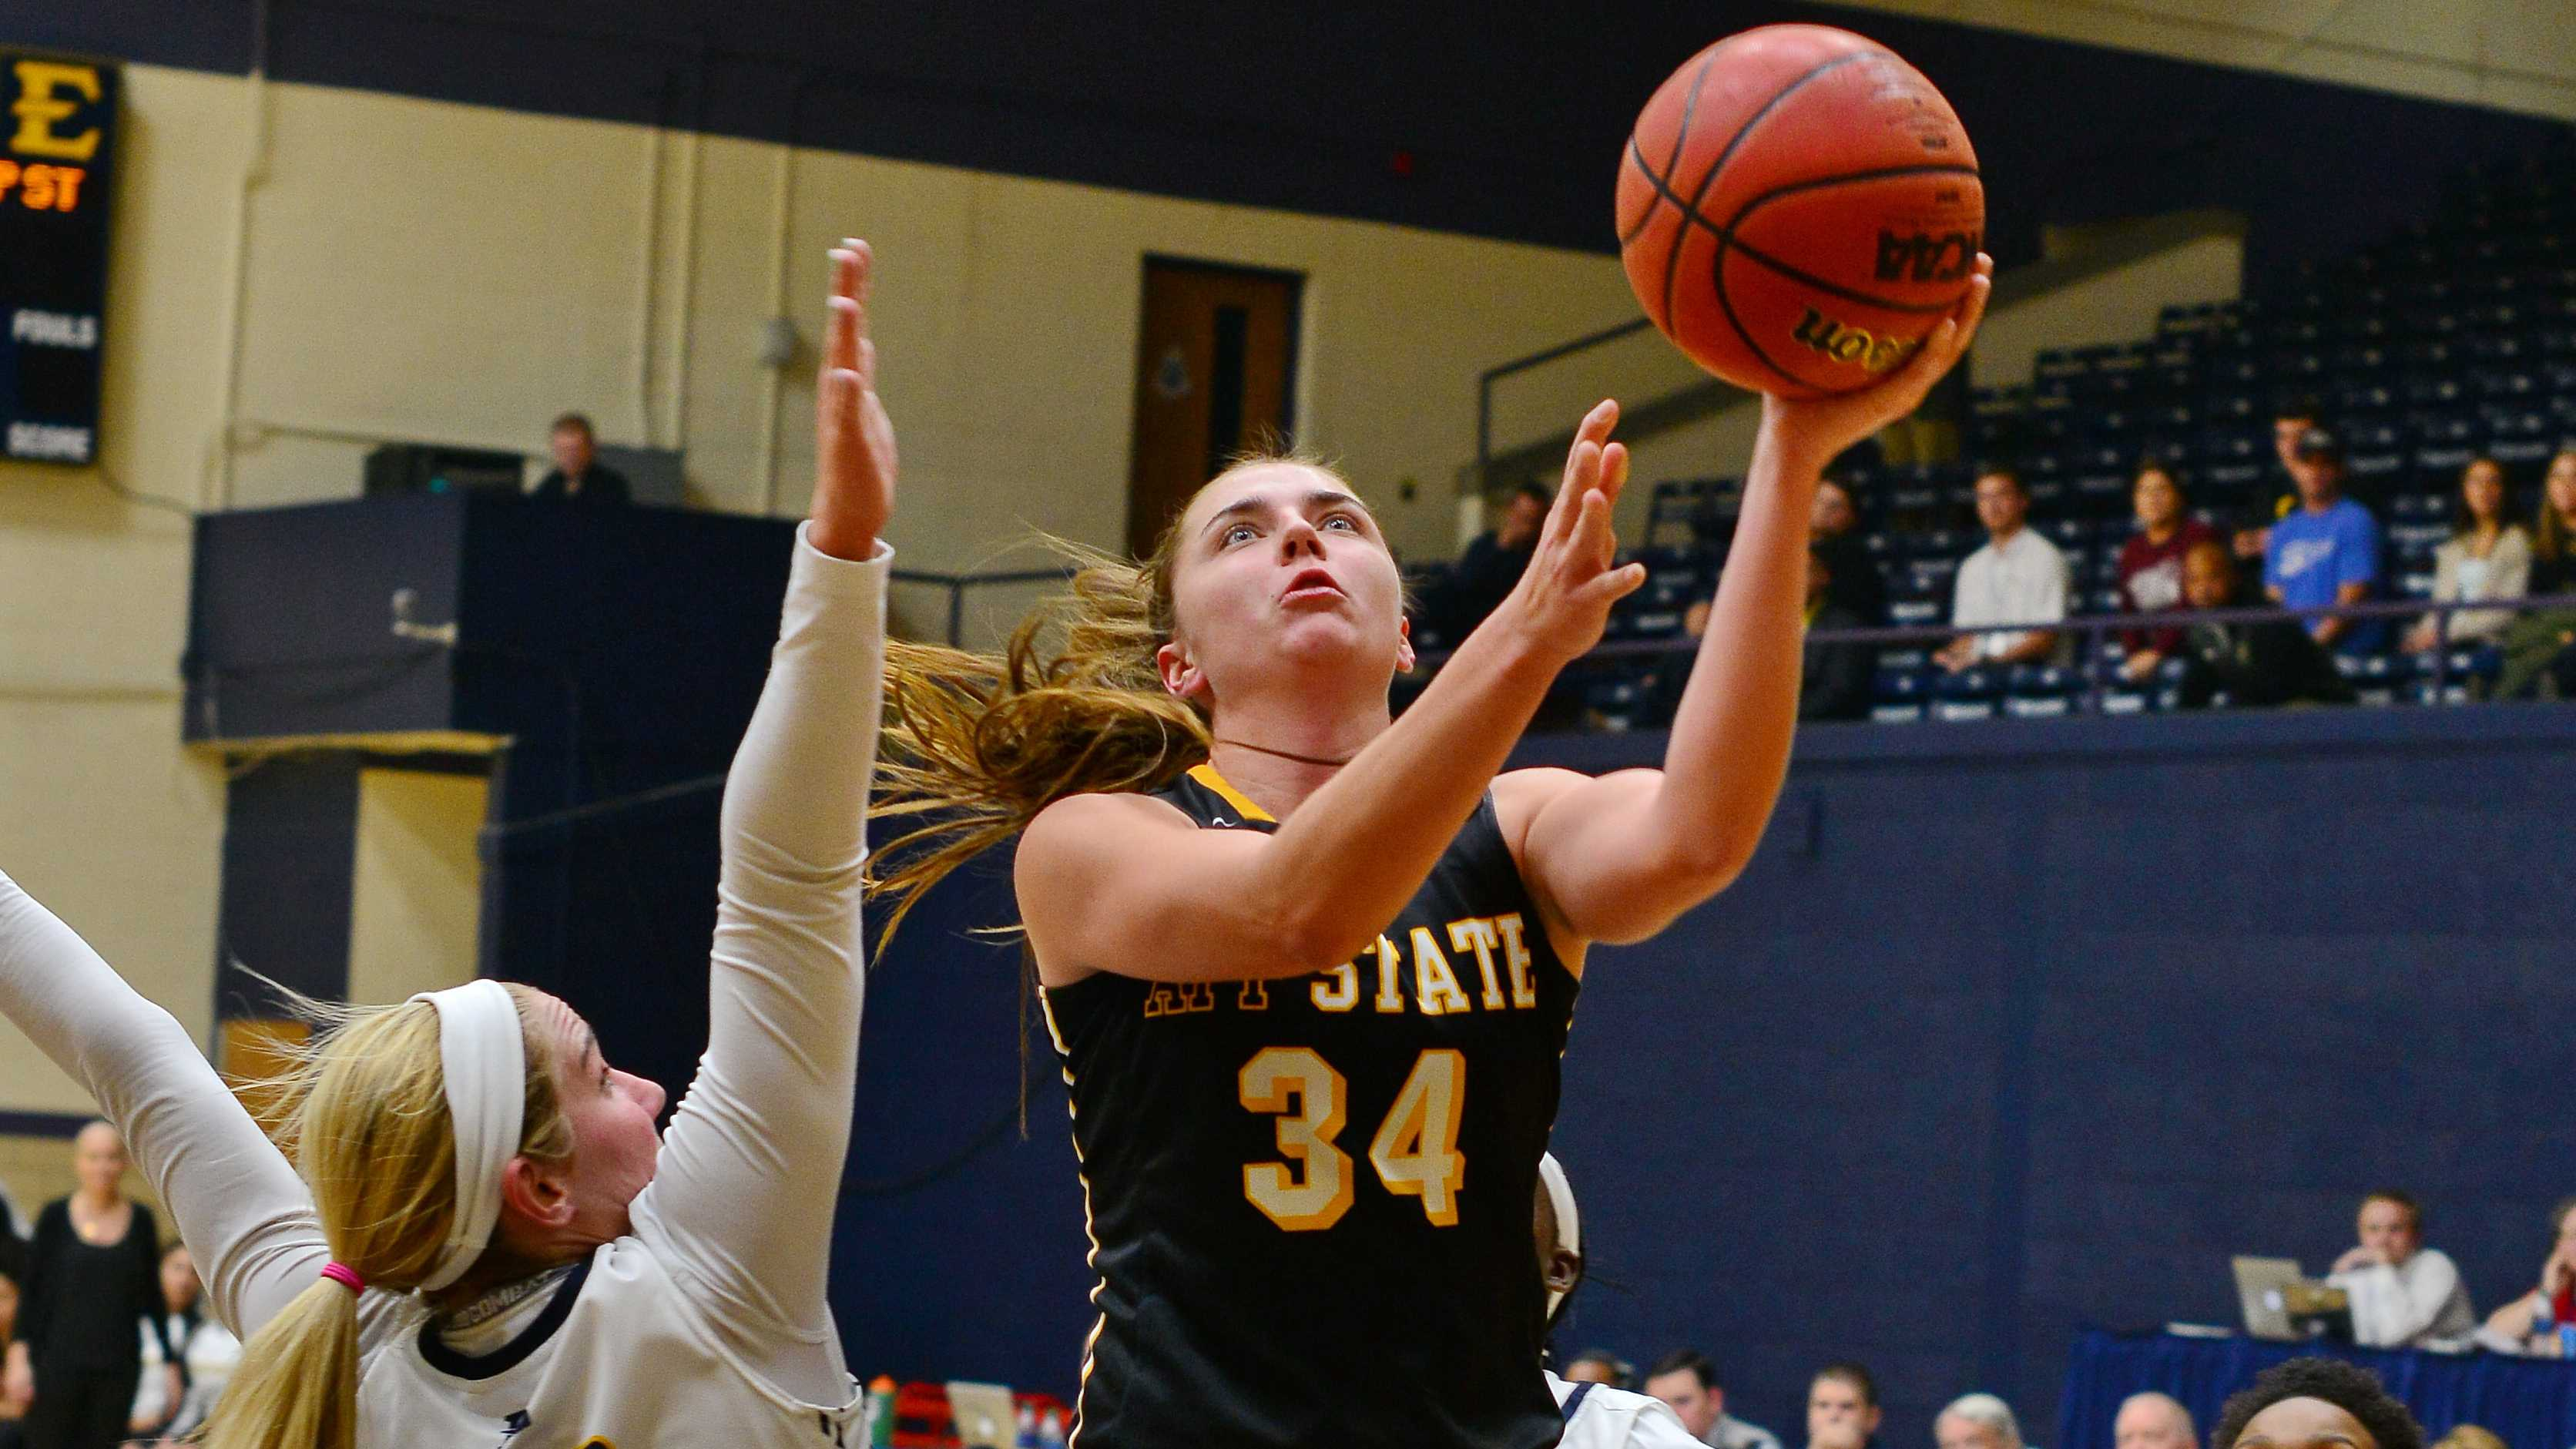 Story scored 31 points tying her career high. Photo courtesy: App State Athletics/Diana Gates